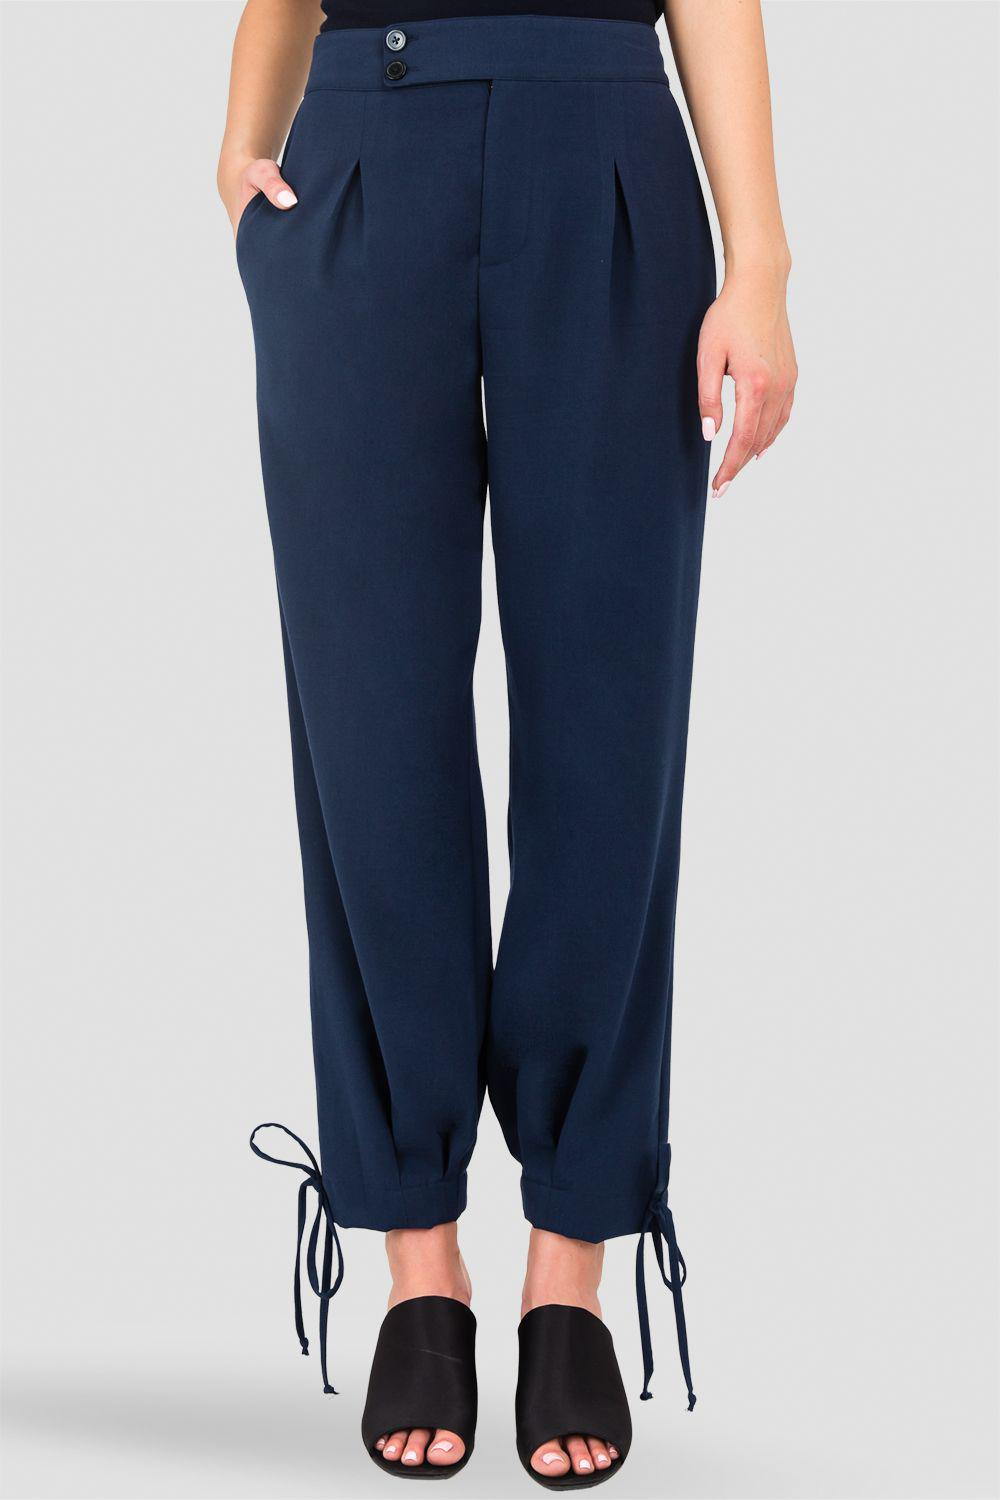 Robie Double-Button High Waist Ankle Tie Cuff Trousers - Midnight Blue